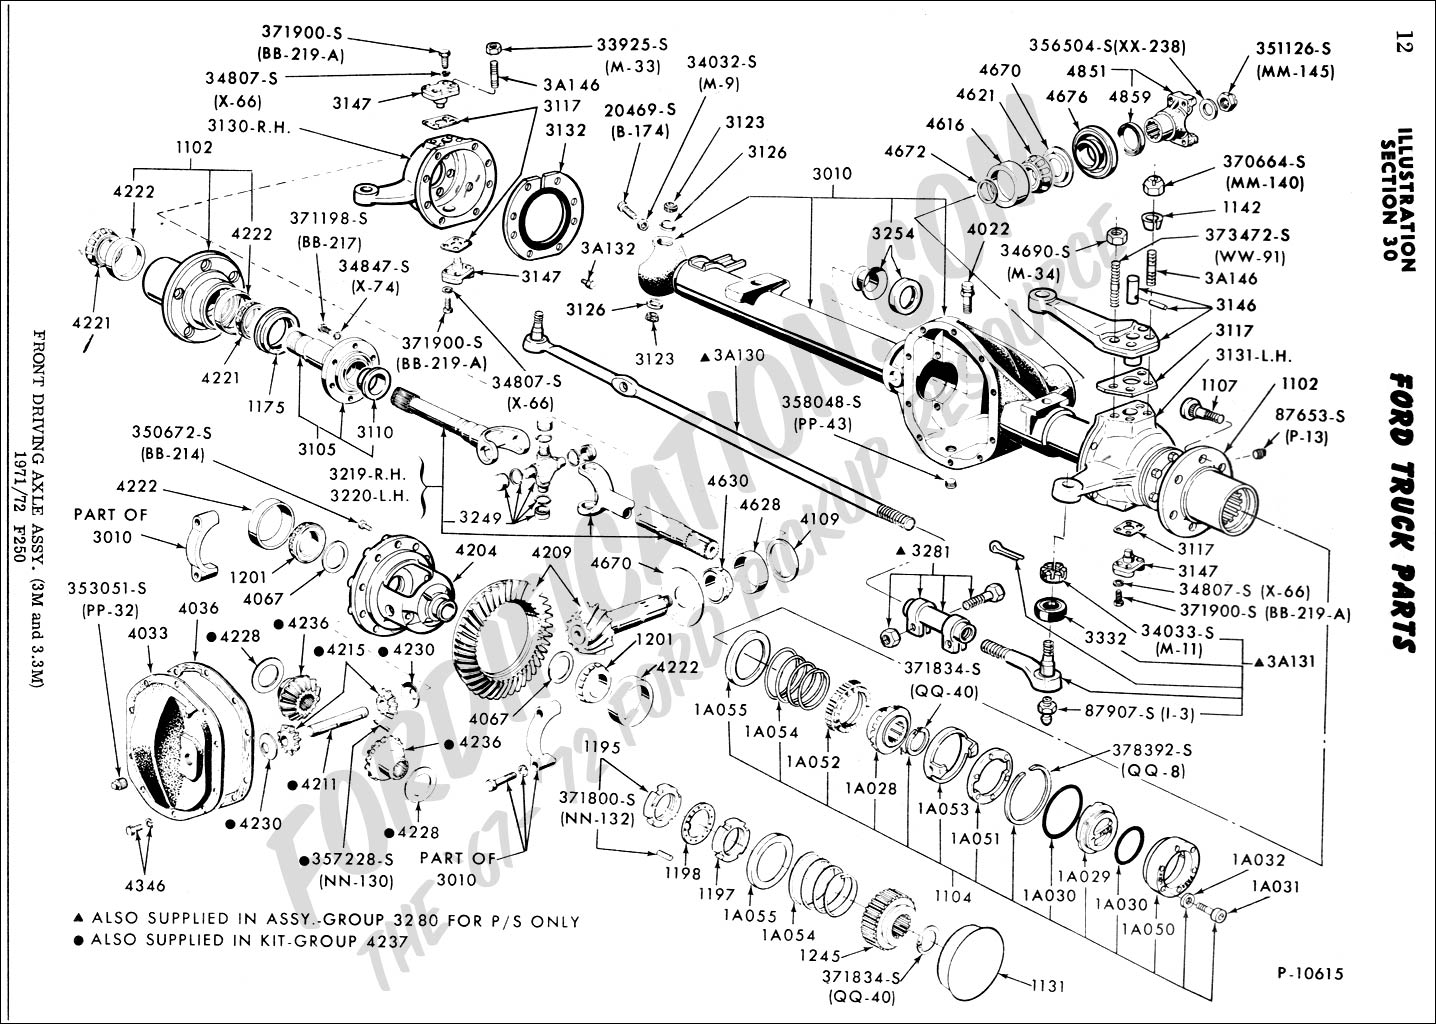 Ford F Pcm Replacement How To Ford Trucks besides New Ignition Actuator Rod in addition X likewise Diff Front as well Ef. on 1997 ford f 150 4x4 transfer case schematic